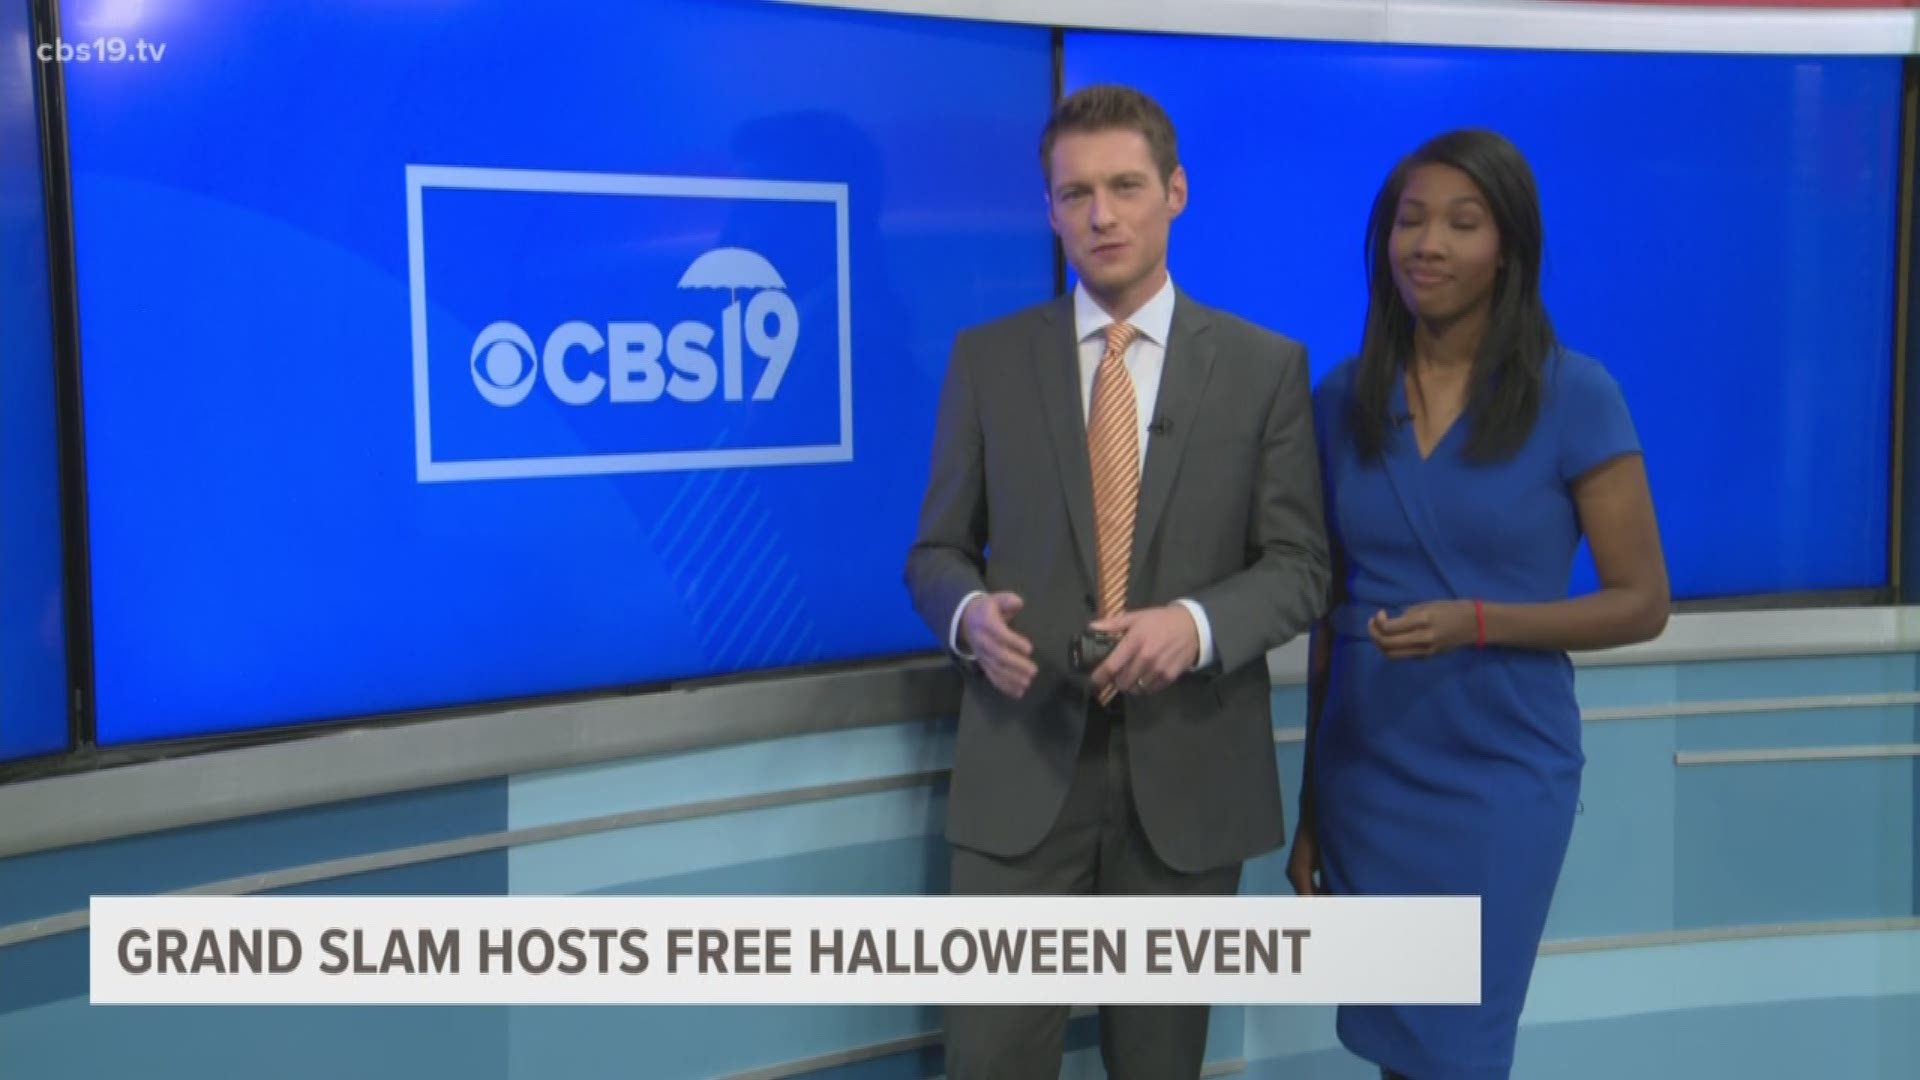 Halloween Events 2020 East Texas What to do on Halloween in East Texas | cbs19.tv